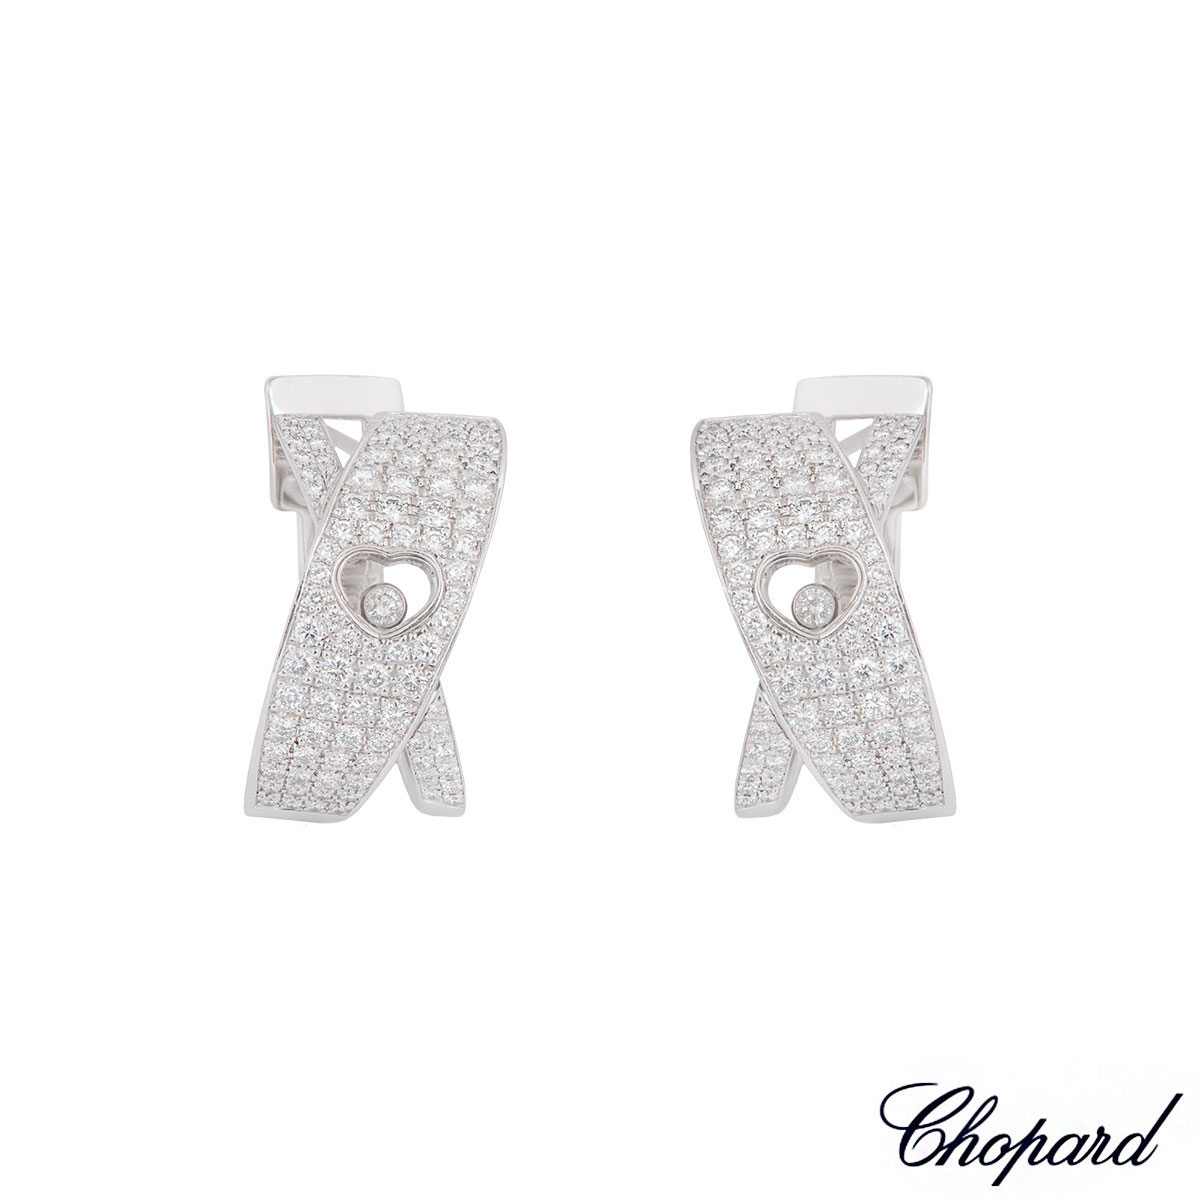 Chopard White Gold Happy Diamonds Earrings 84/3203-20